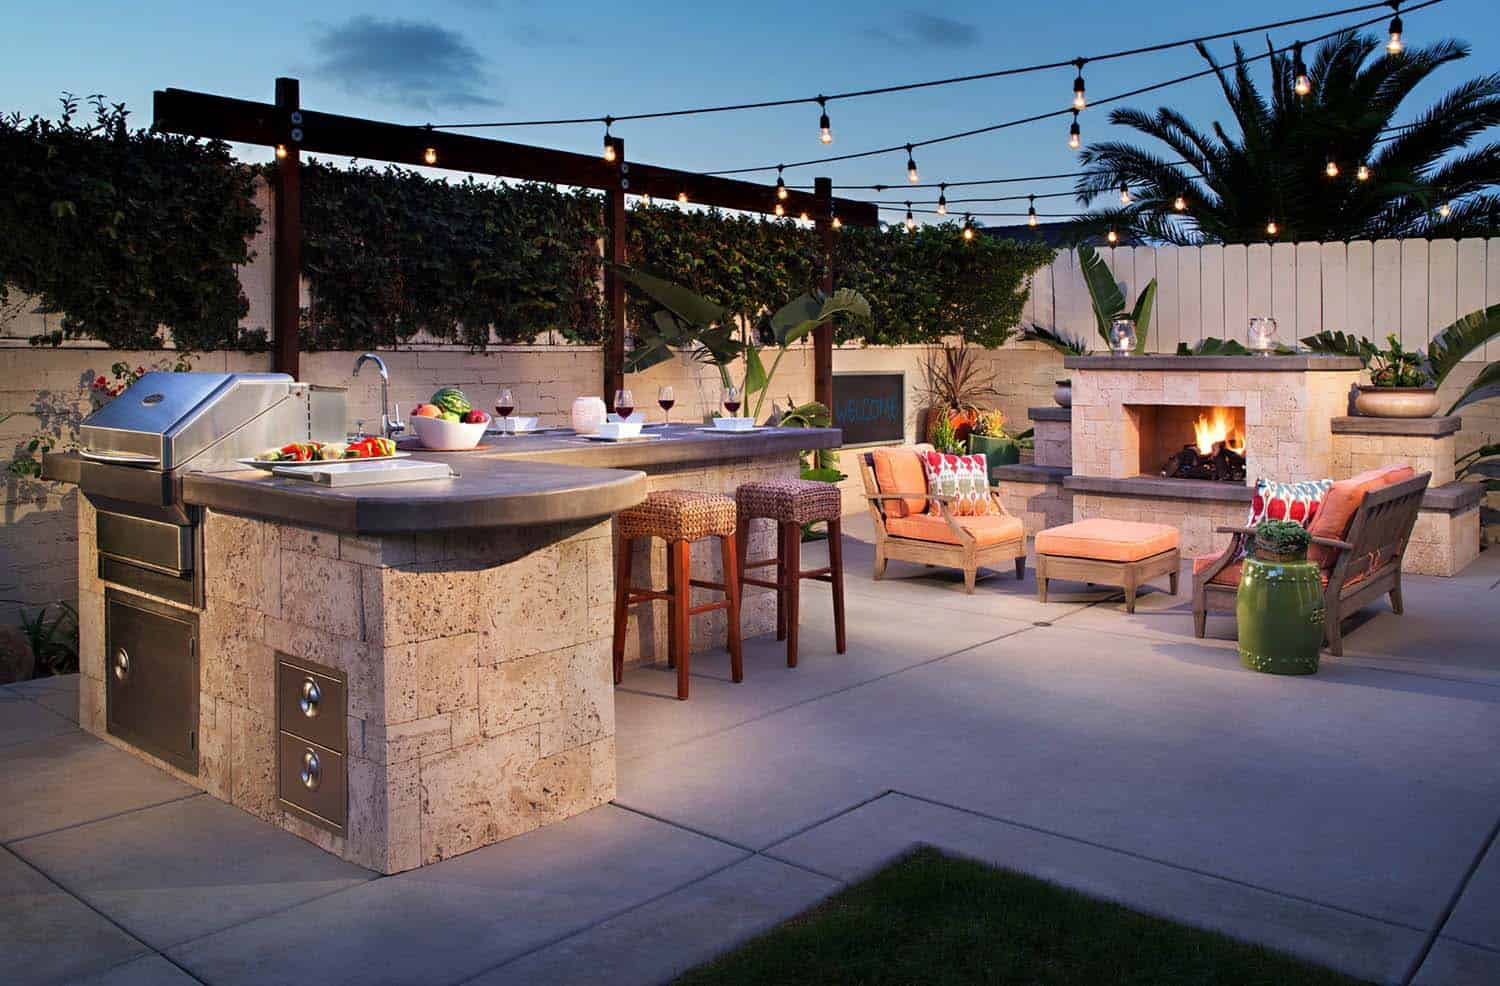 35 Brilliant and inspiring patio ideas for outdoor living ... on Small Backyard Entertainment Area Ideas id=93496